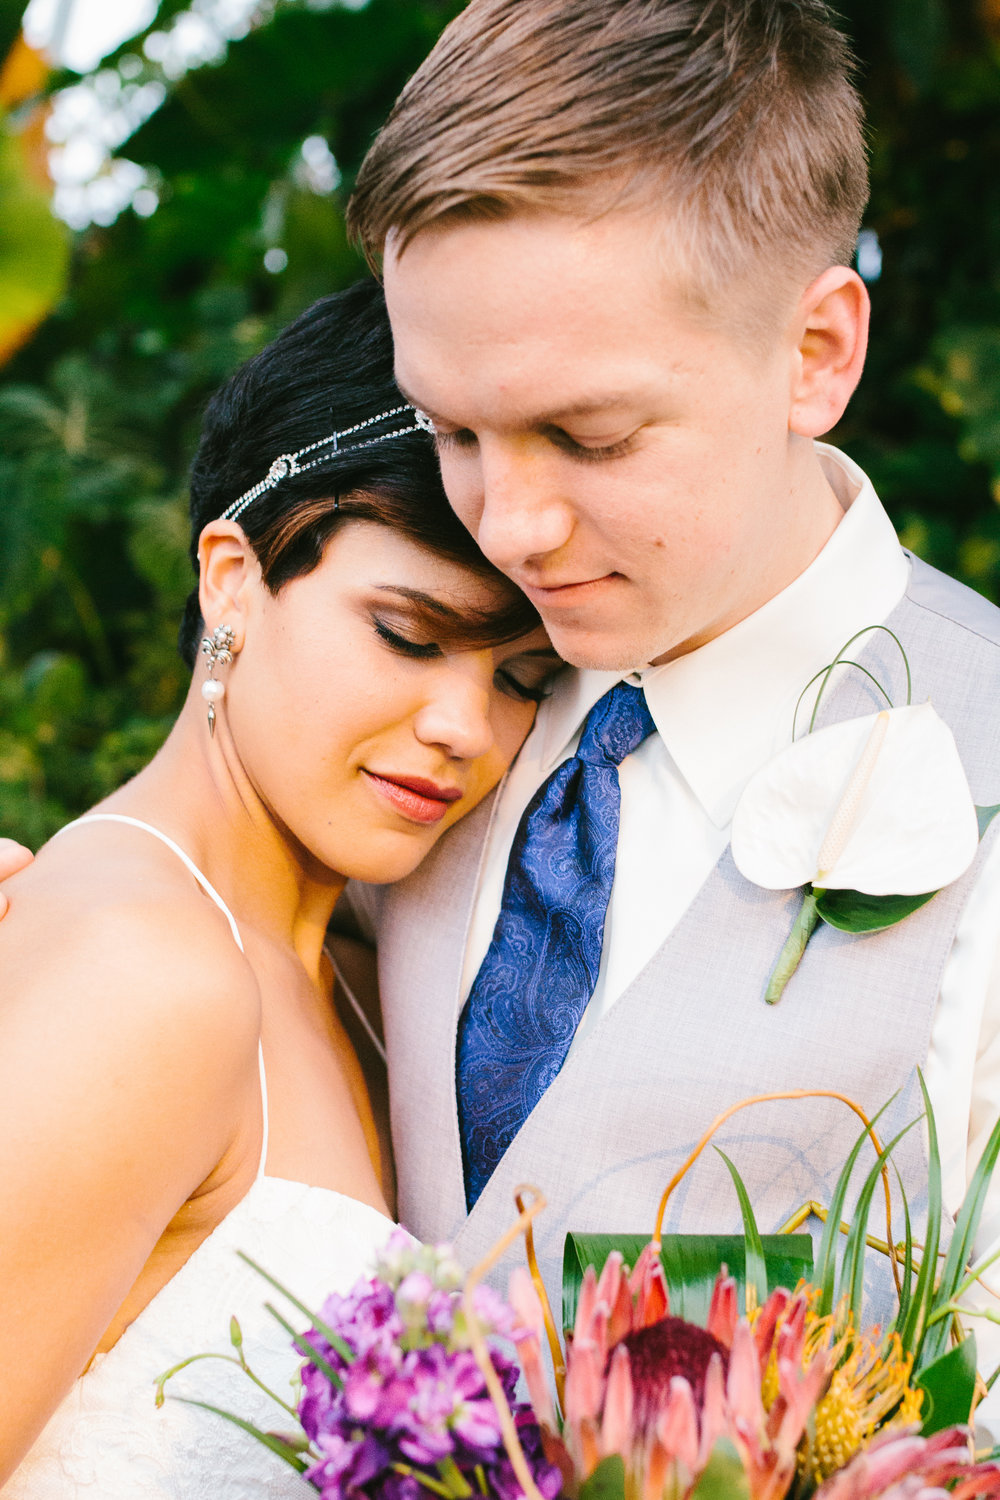 Gorgeous Bride + Groom Photos - A Botanical Gardens Budget Wedding - From Britt's Eye View Photography